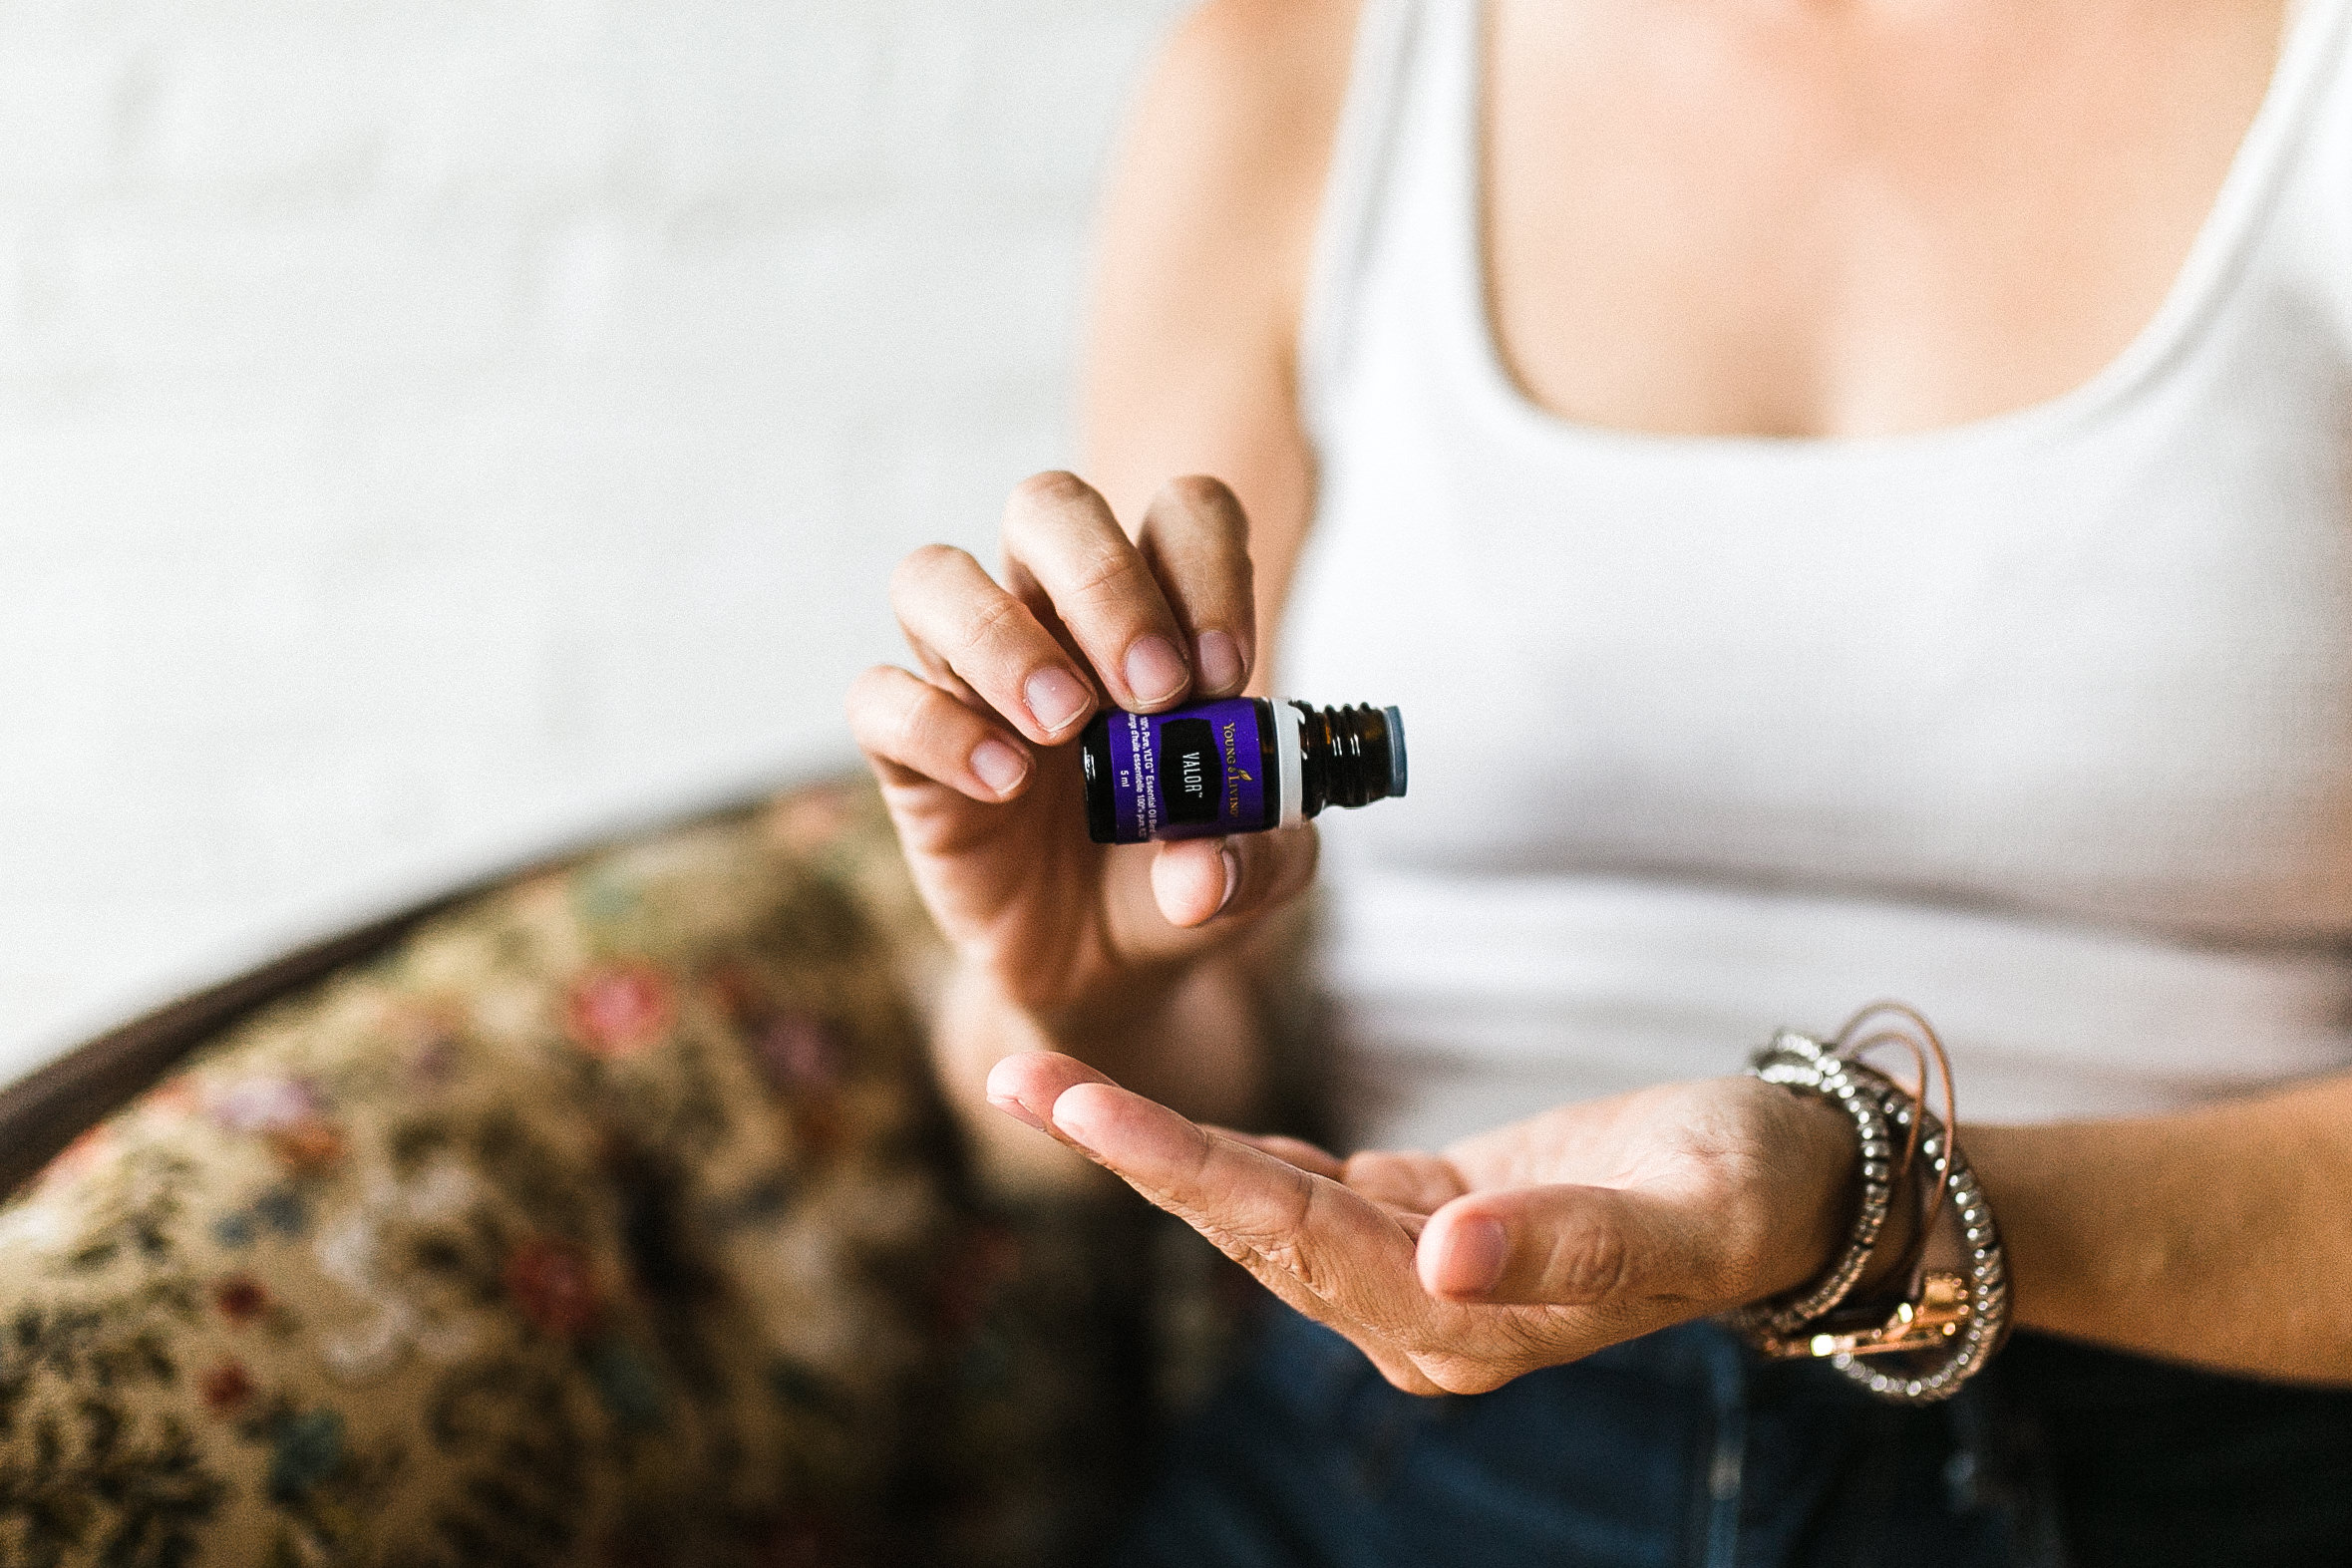 Aromatherapy Coaching Session$60 - 60 Minute Session